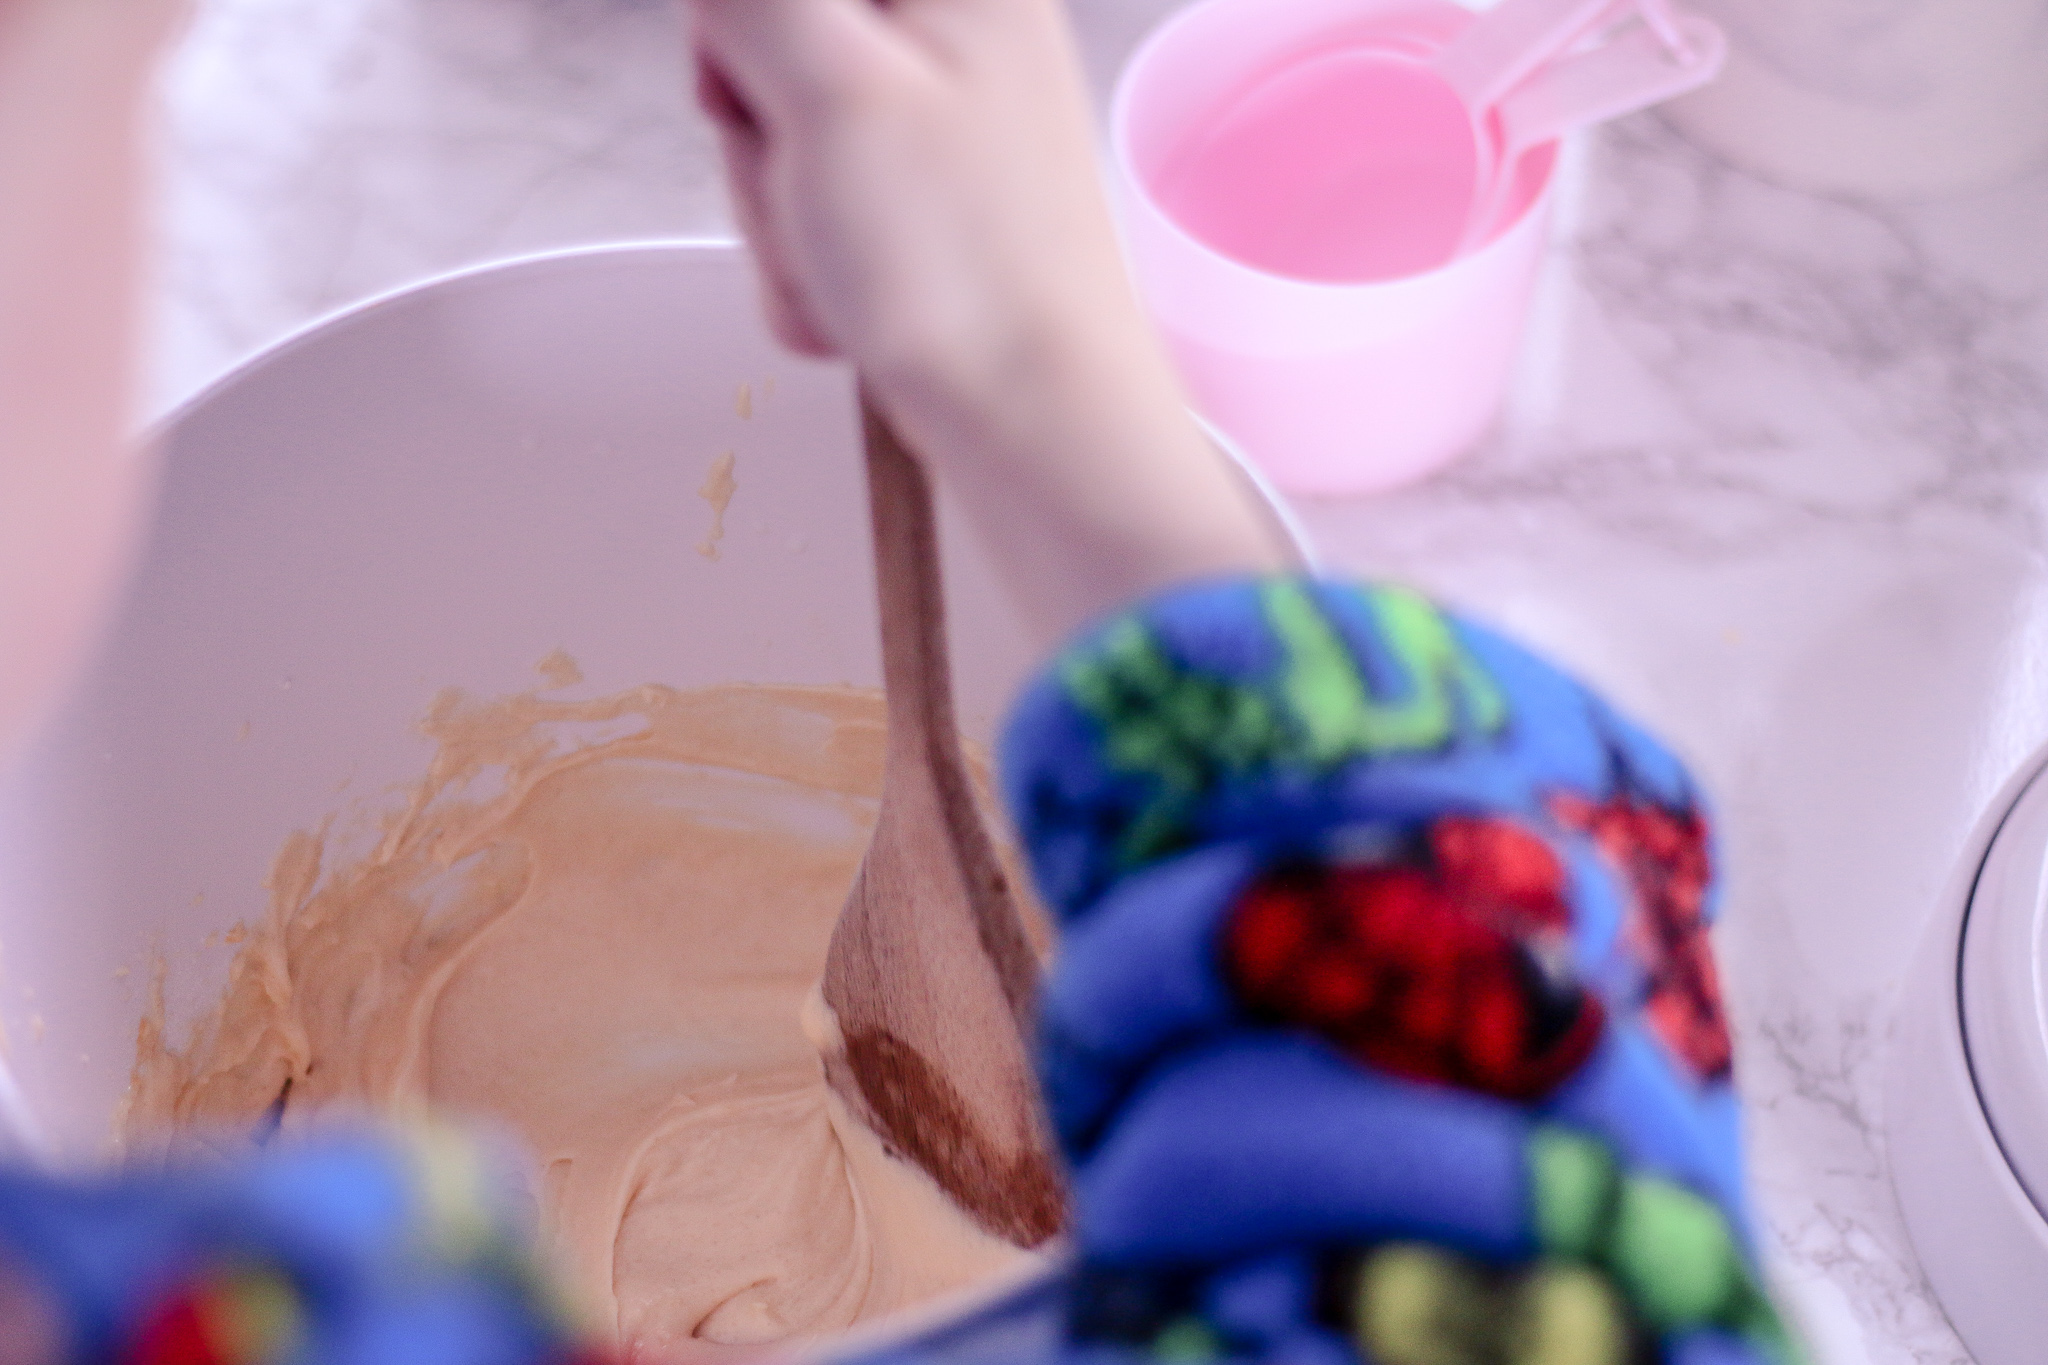 Over the shoulder shot of a boy mixing a cake mix in a white bowl